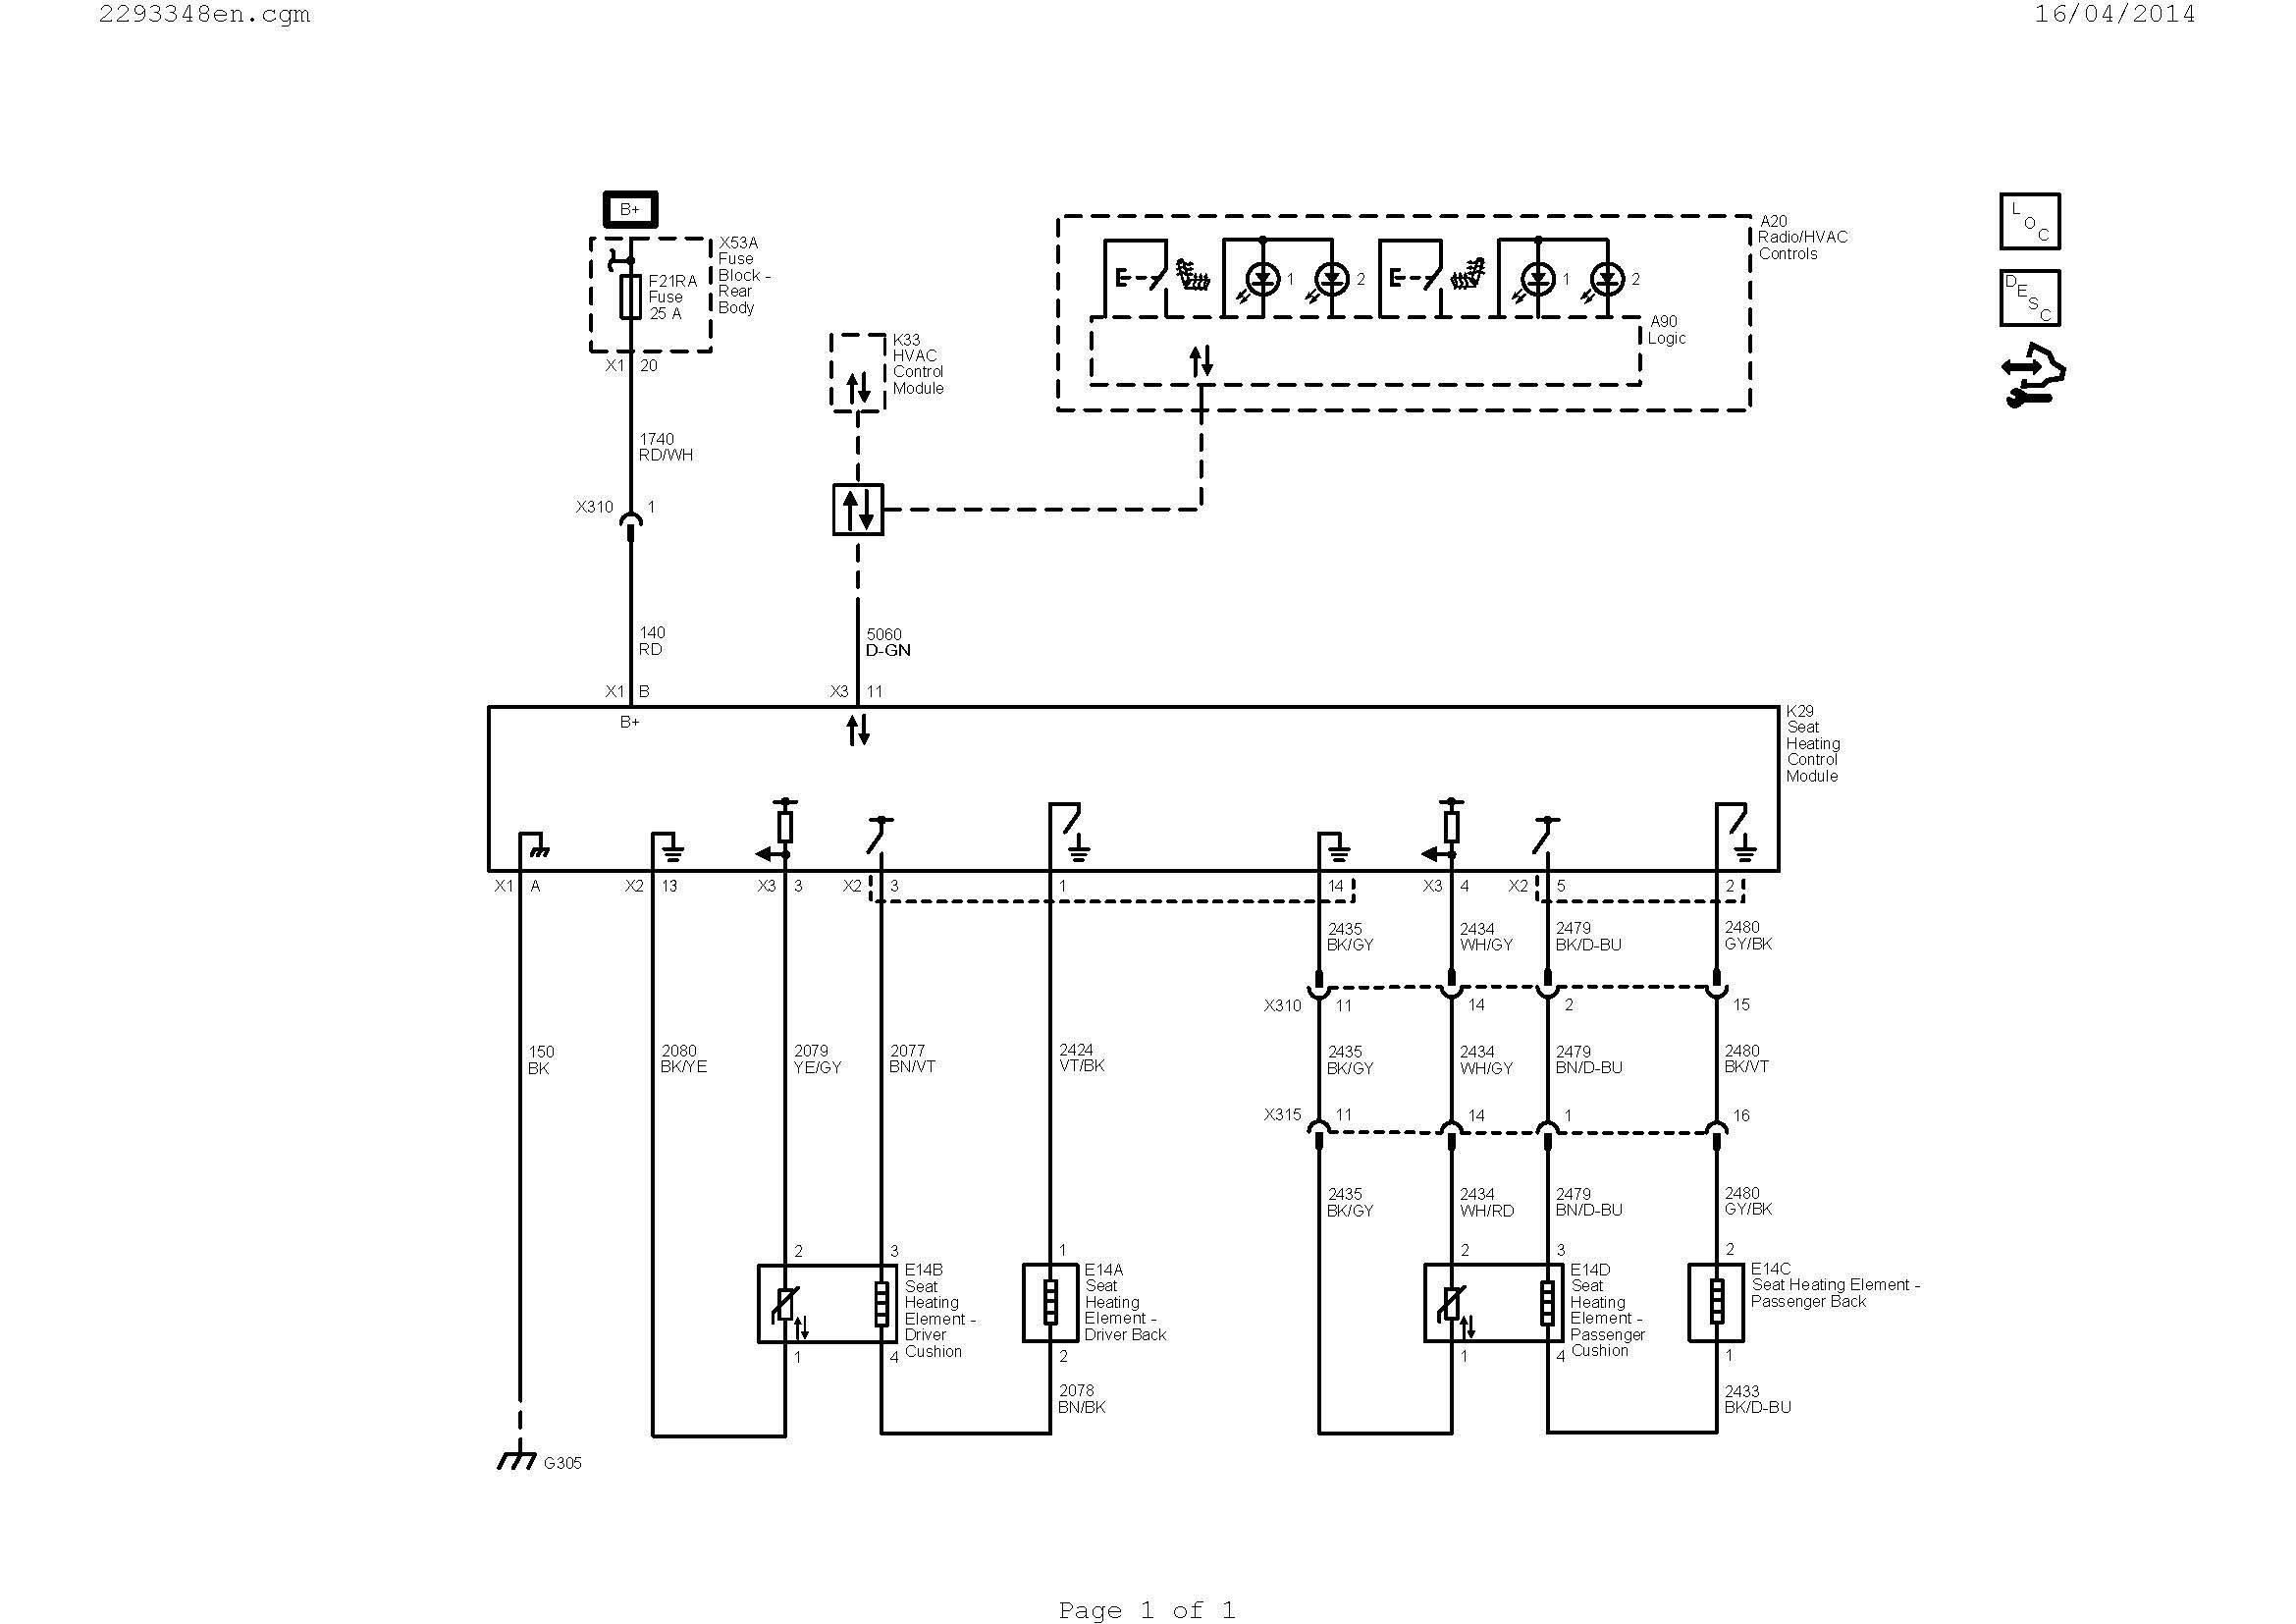 xsvi 6523 nav wiring diagram Download-hvac wiring diagram Collection Wiring A Ac Thermostat Diagram New Wiring Diagram Ac Valid Hvac DOWNLOAD Wiring Diagram 3-t